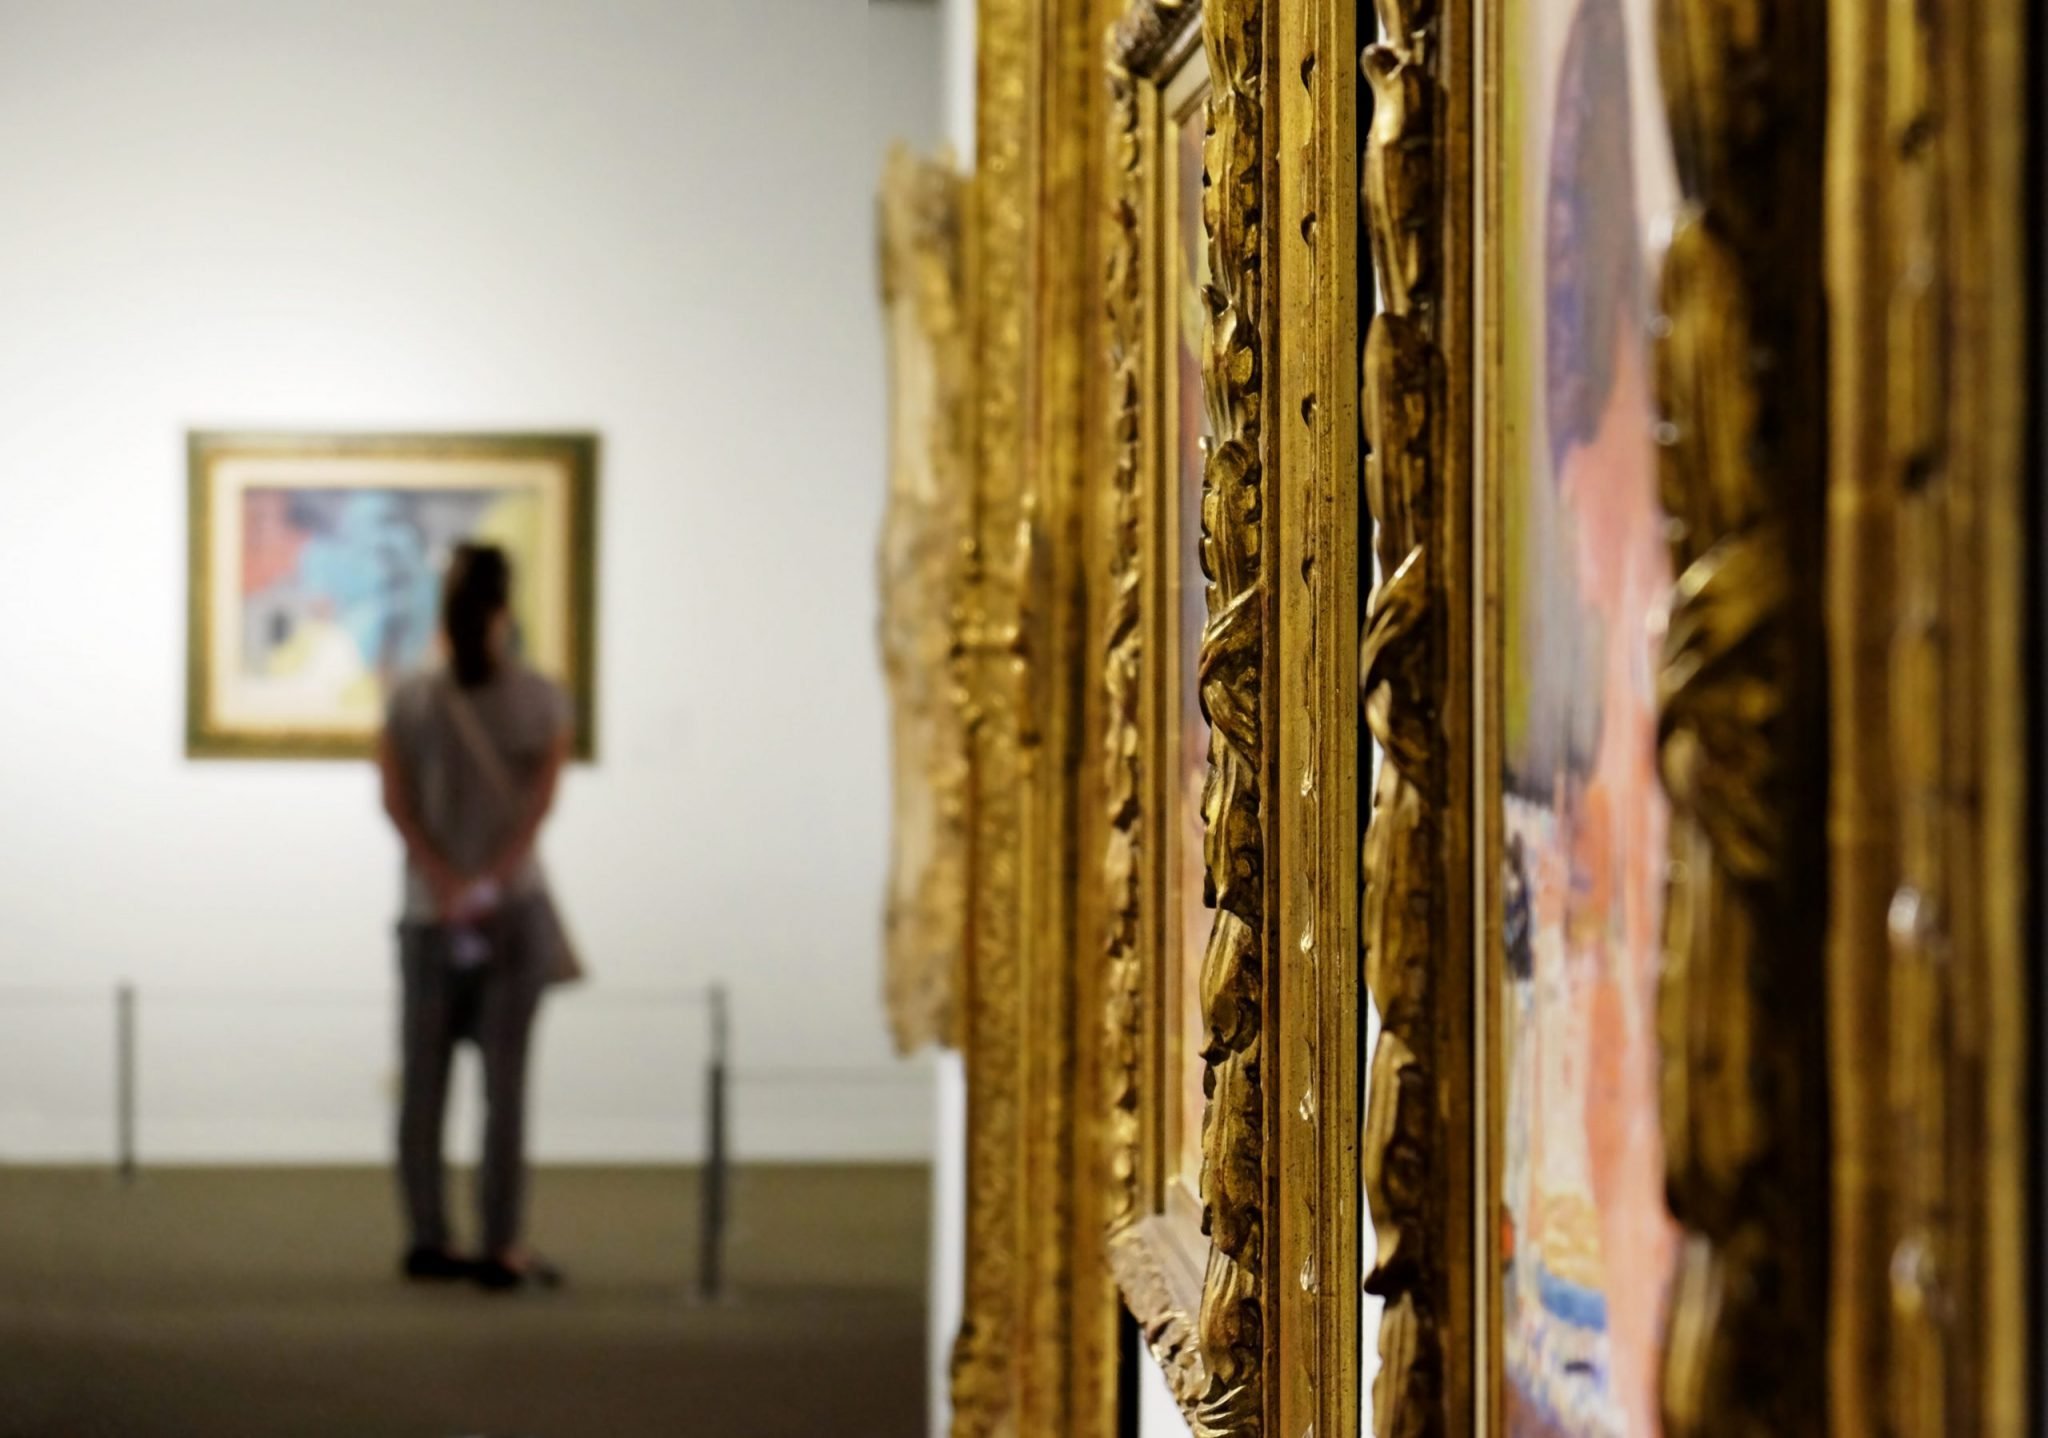 Golden, ornate frames in an art gallery with a person standing in the distance.